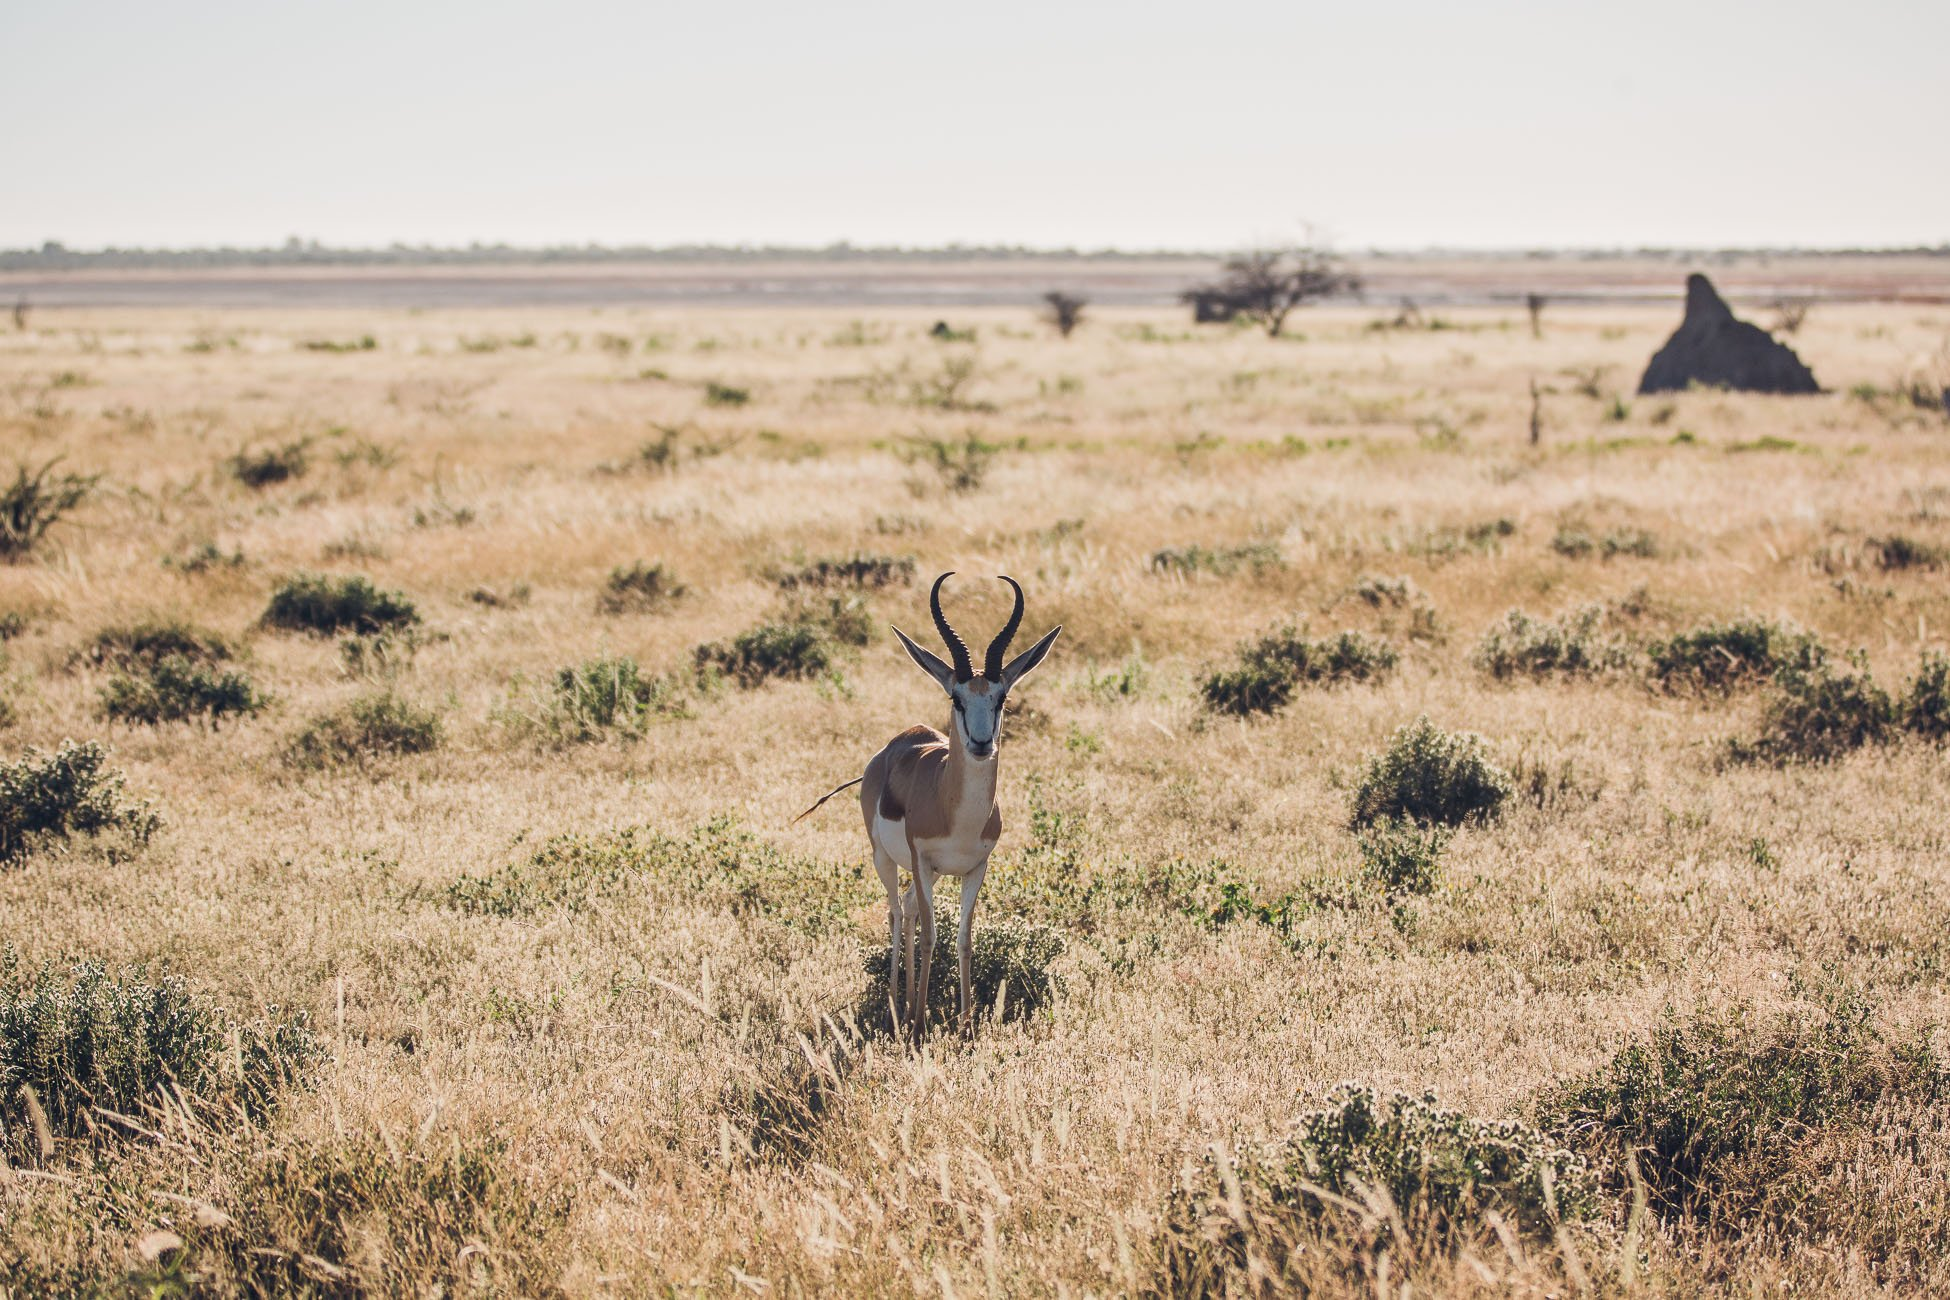 Wildlife at Etosha National Park